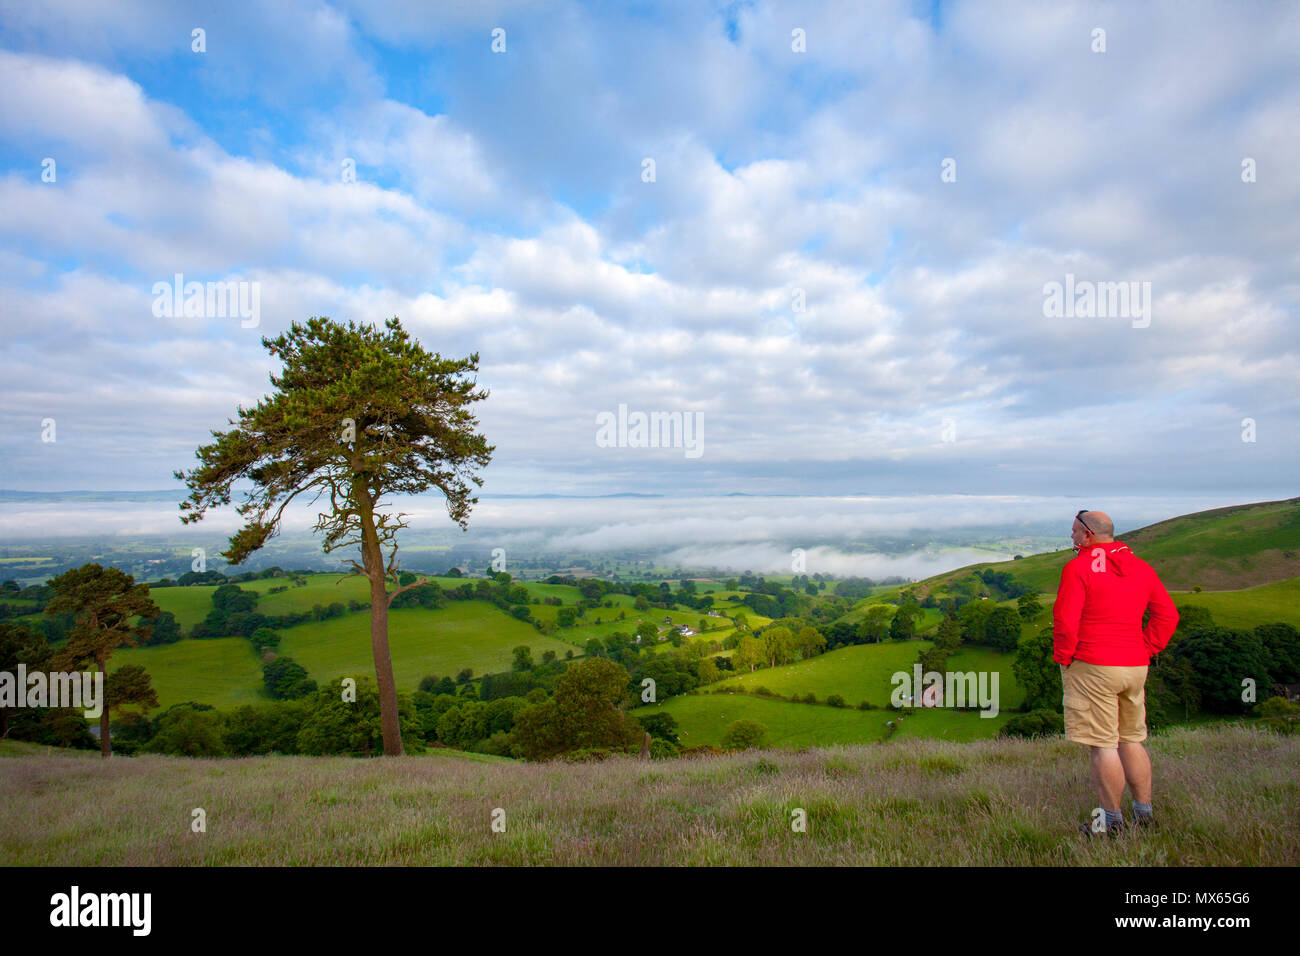 North Wales, UK Weather:  A warm start to the day in North Wales with pockets of low level fog in areas.  A walker taking in the view and the last of the fog caused by a weathe inversion in the appropriately named Vale of Clwyd, Denbighshire, Wales - Stock Image